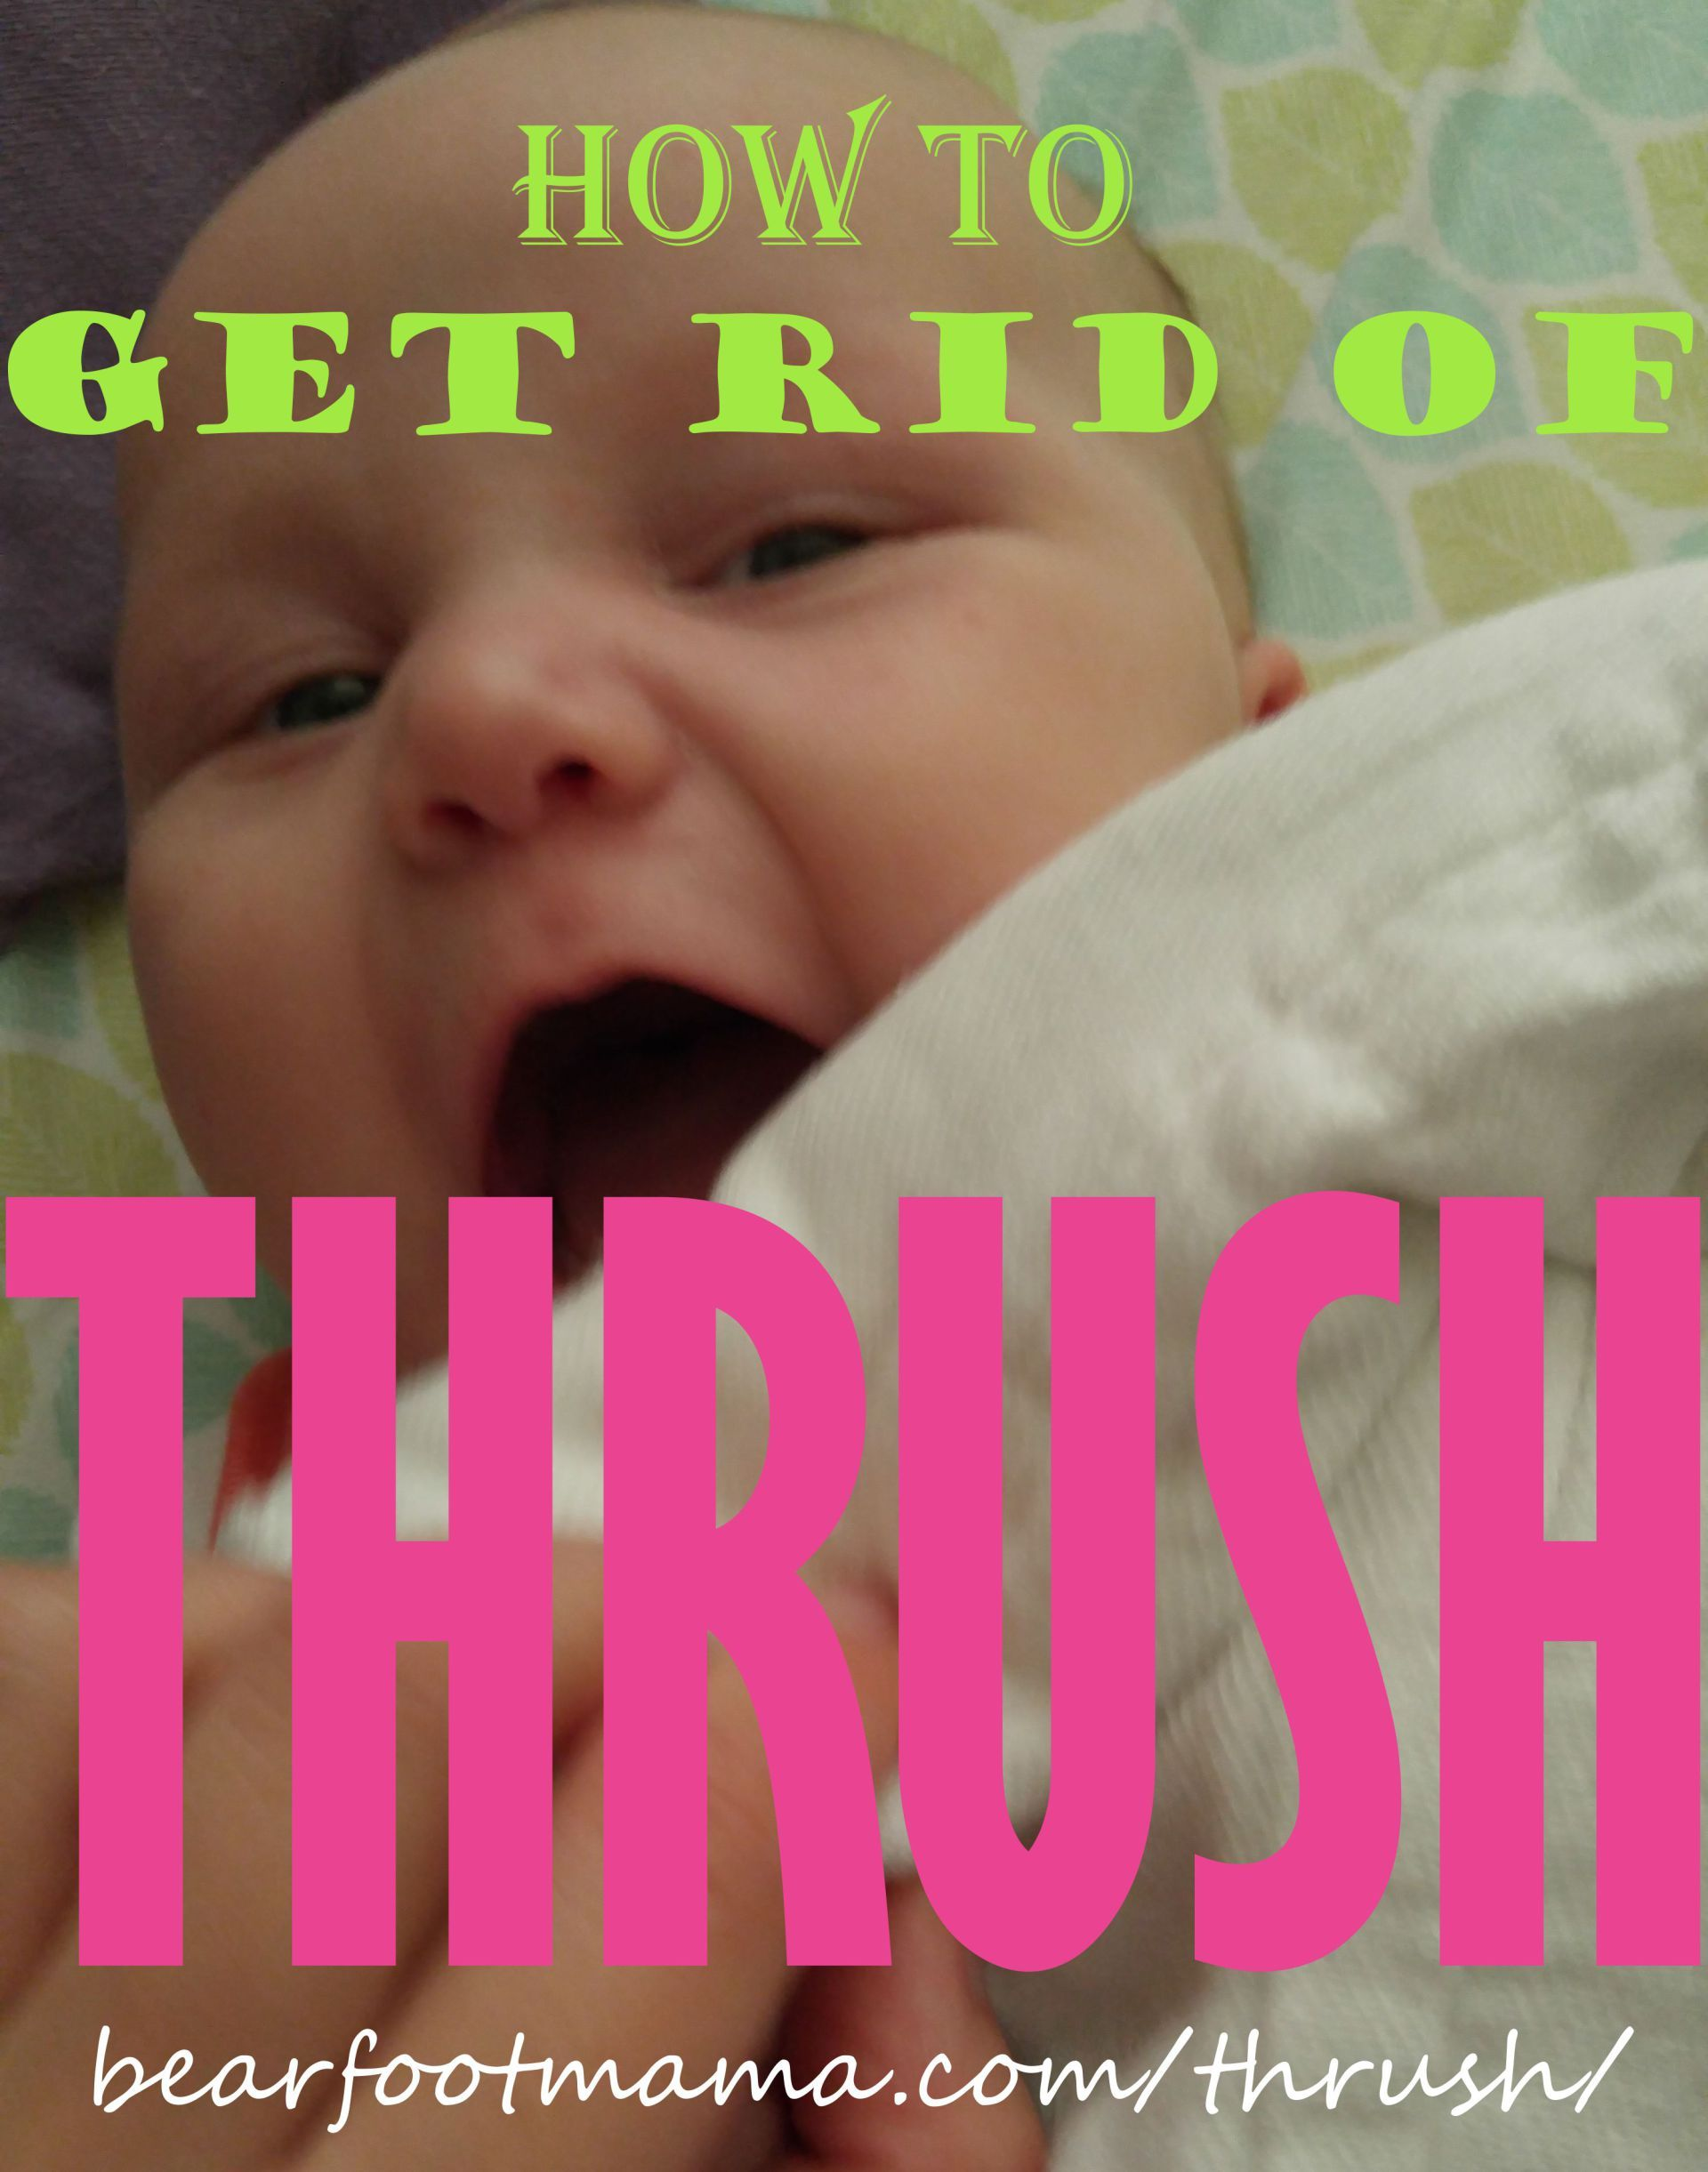 64f5128f601333b65a49d7687c183f66 - How To Get Rid Of Teething Rash Around Mouth